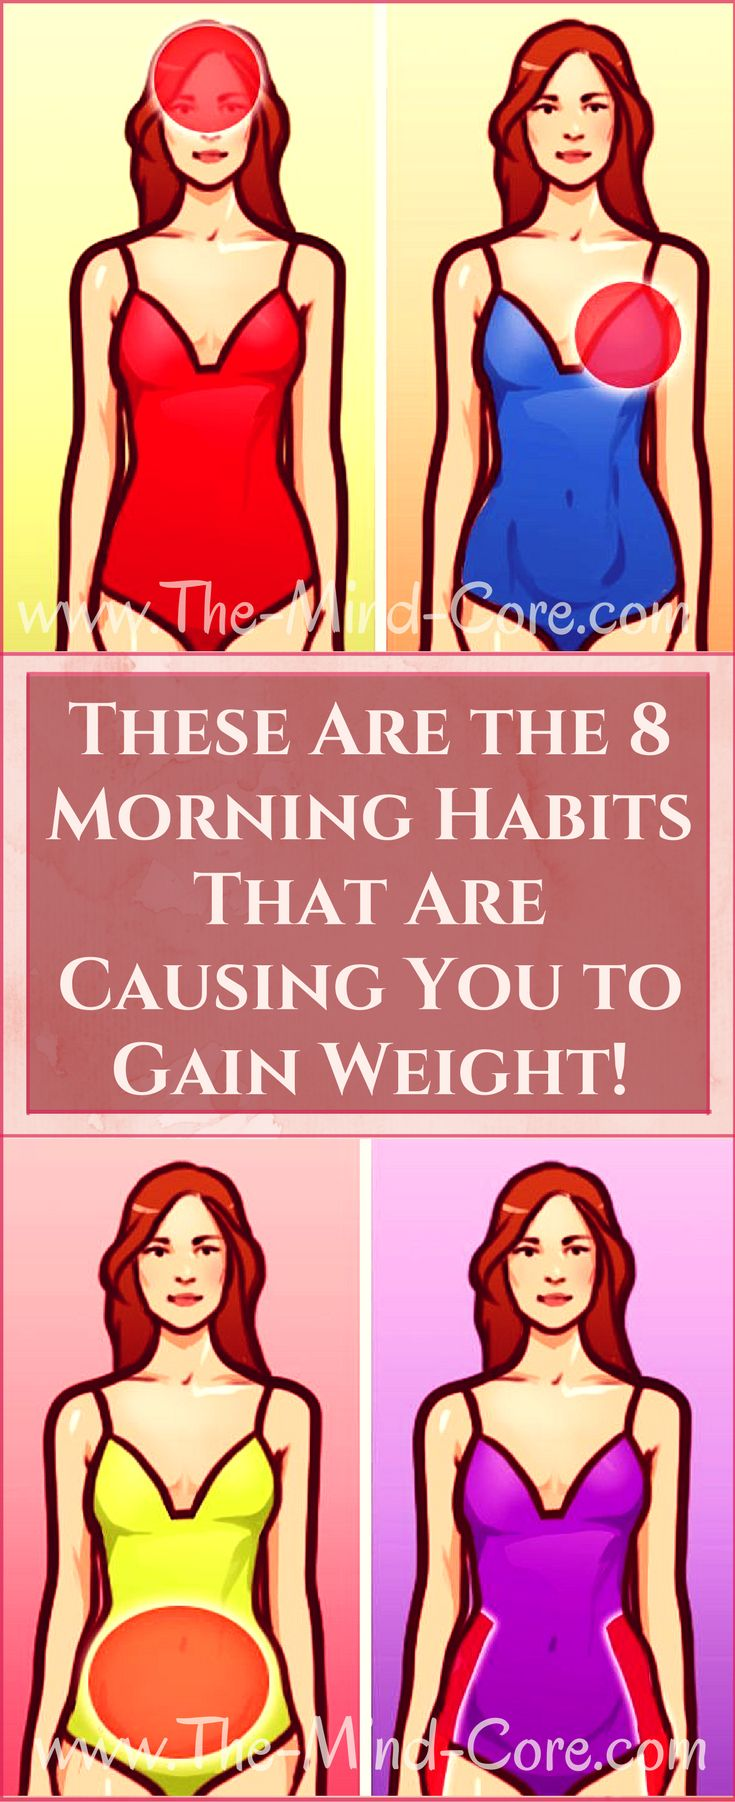 Ladies, Here Are 8 Morning Habits That Are Causing You to Gain Weight (You MUST Avoid Them!)